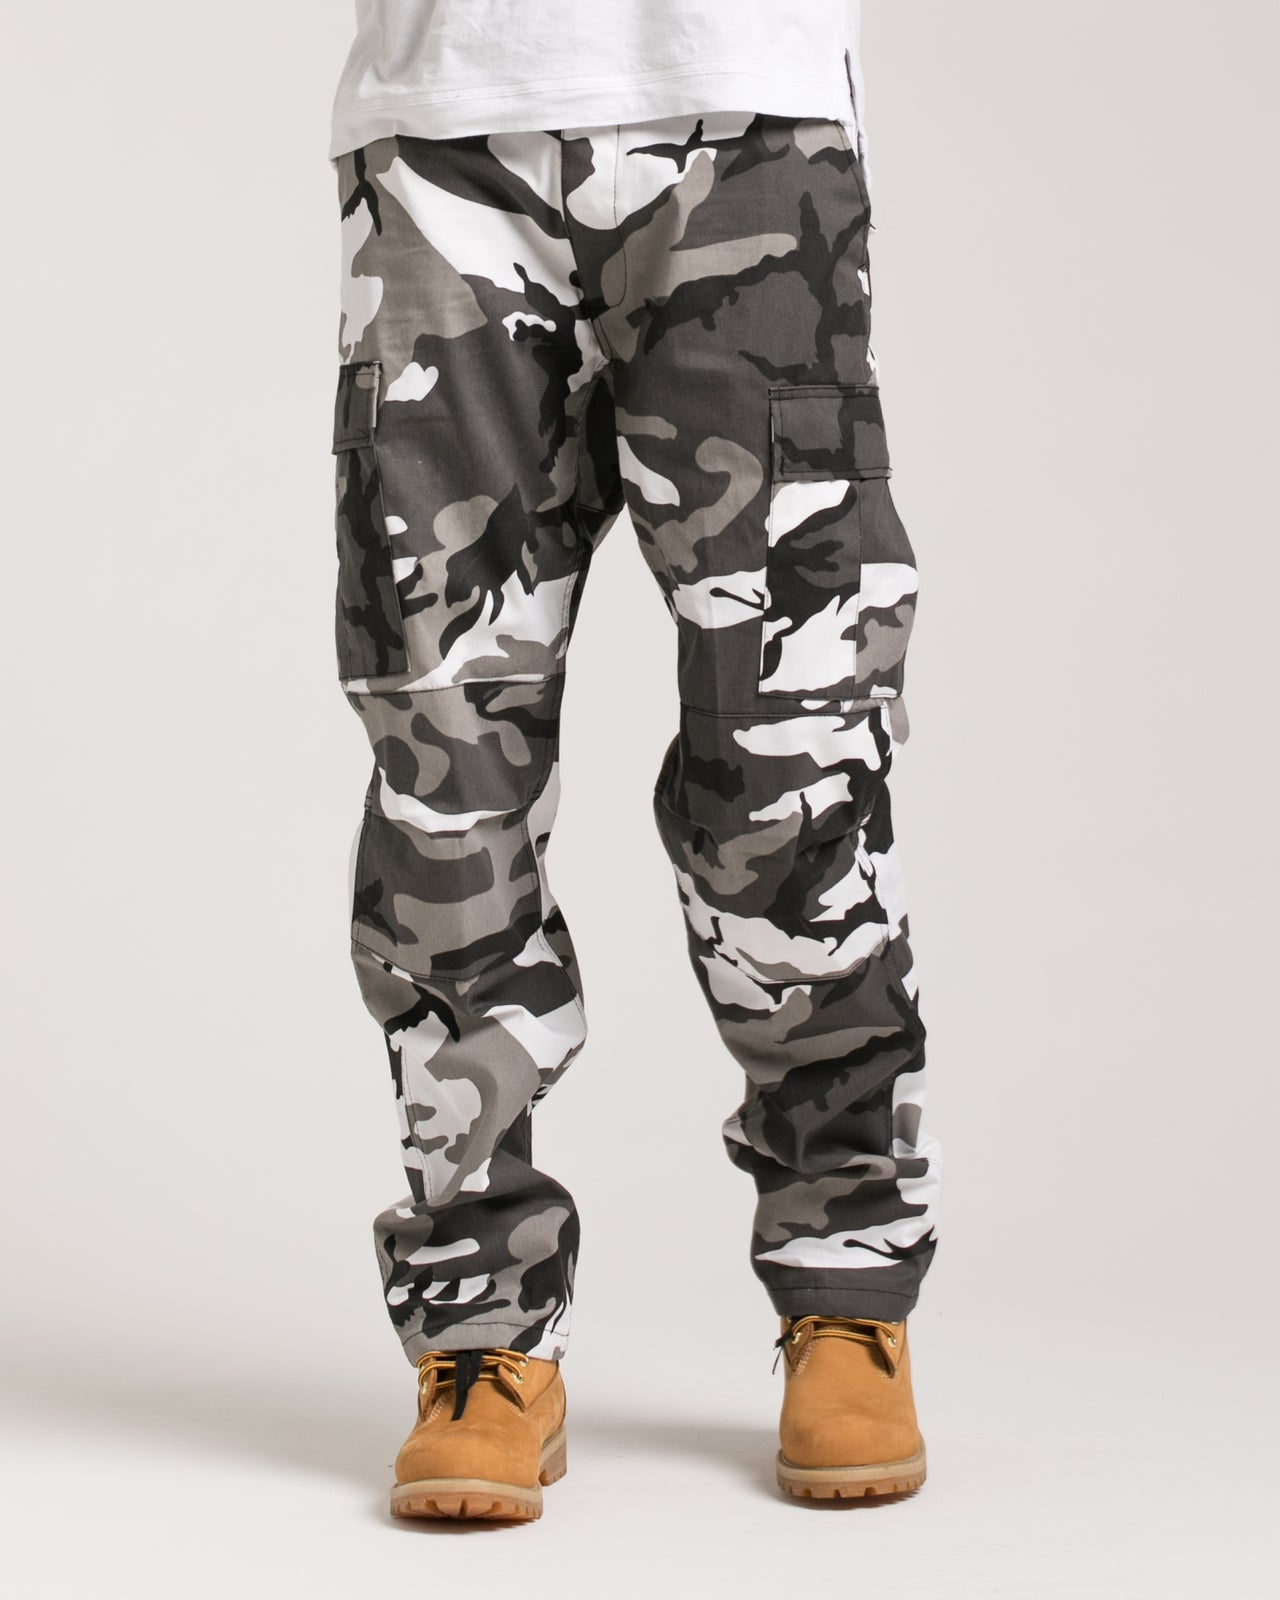 B.D.U. Pants - Color: City Camo | White